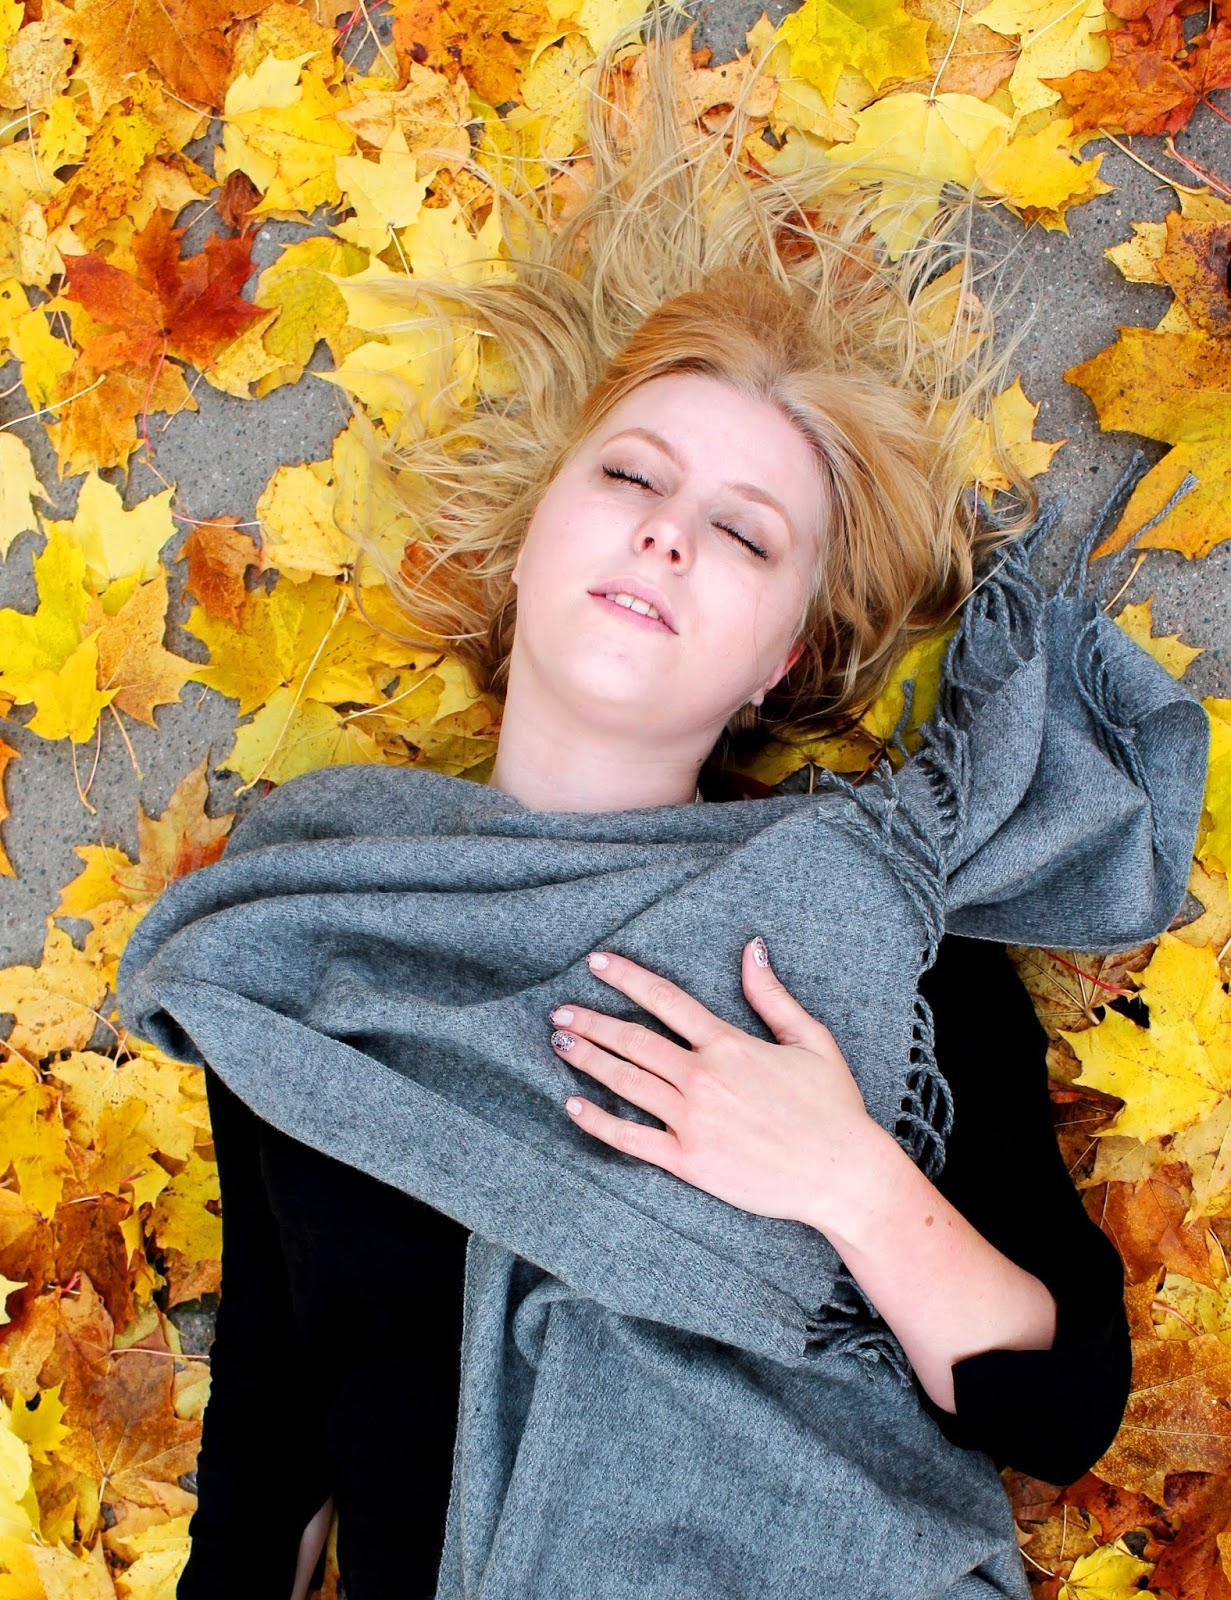 blogger, laying, down, ground, downtoearth, beautiful, girl, fall, falling, dead, editorial, model, modeling, photoshooting, photography, camera, photographer